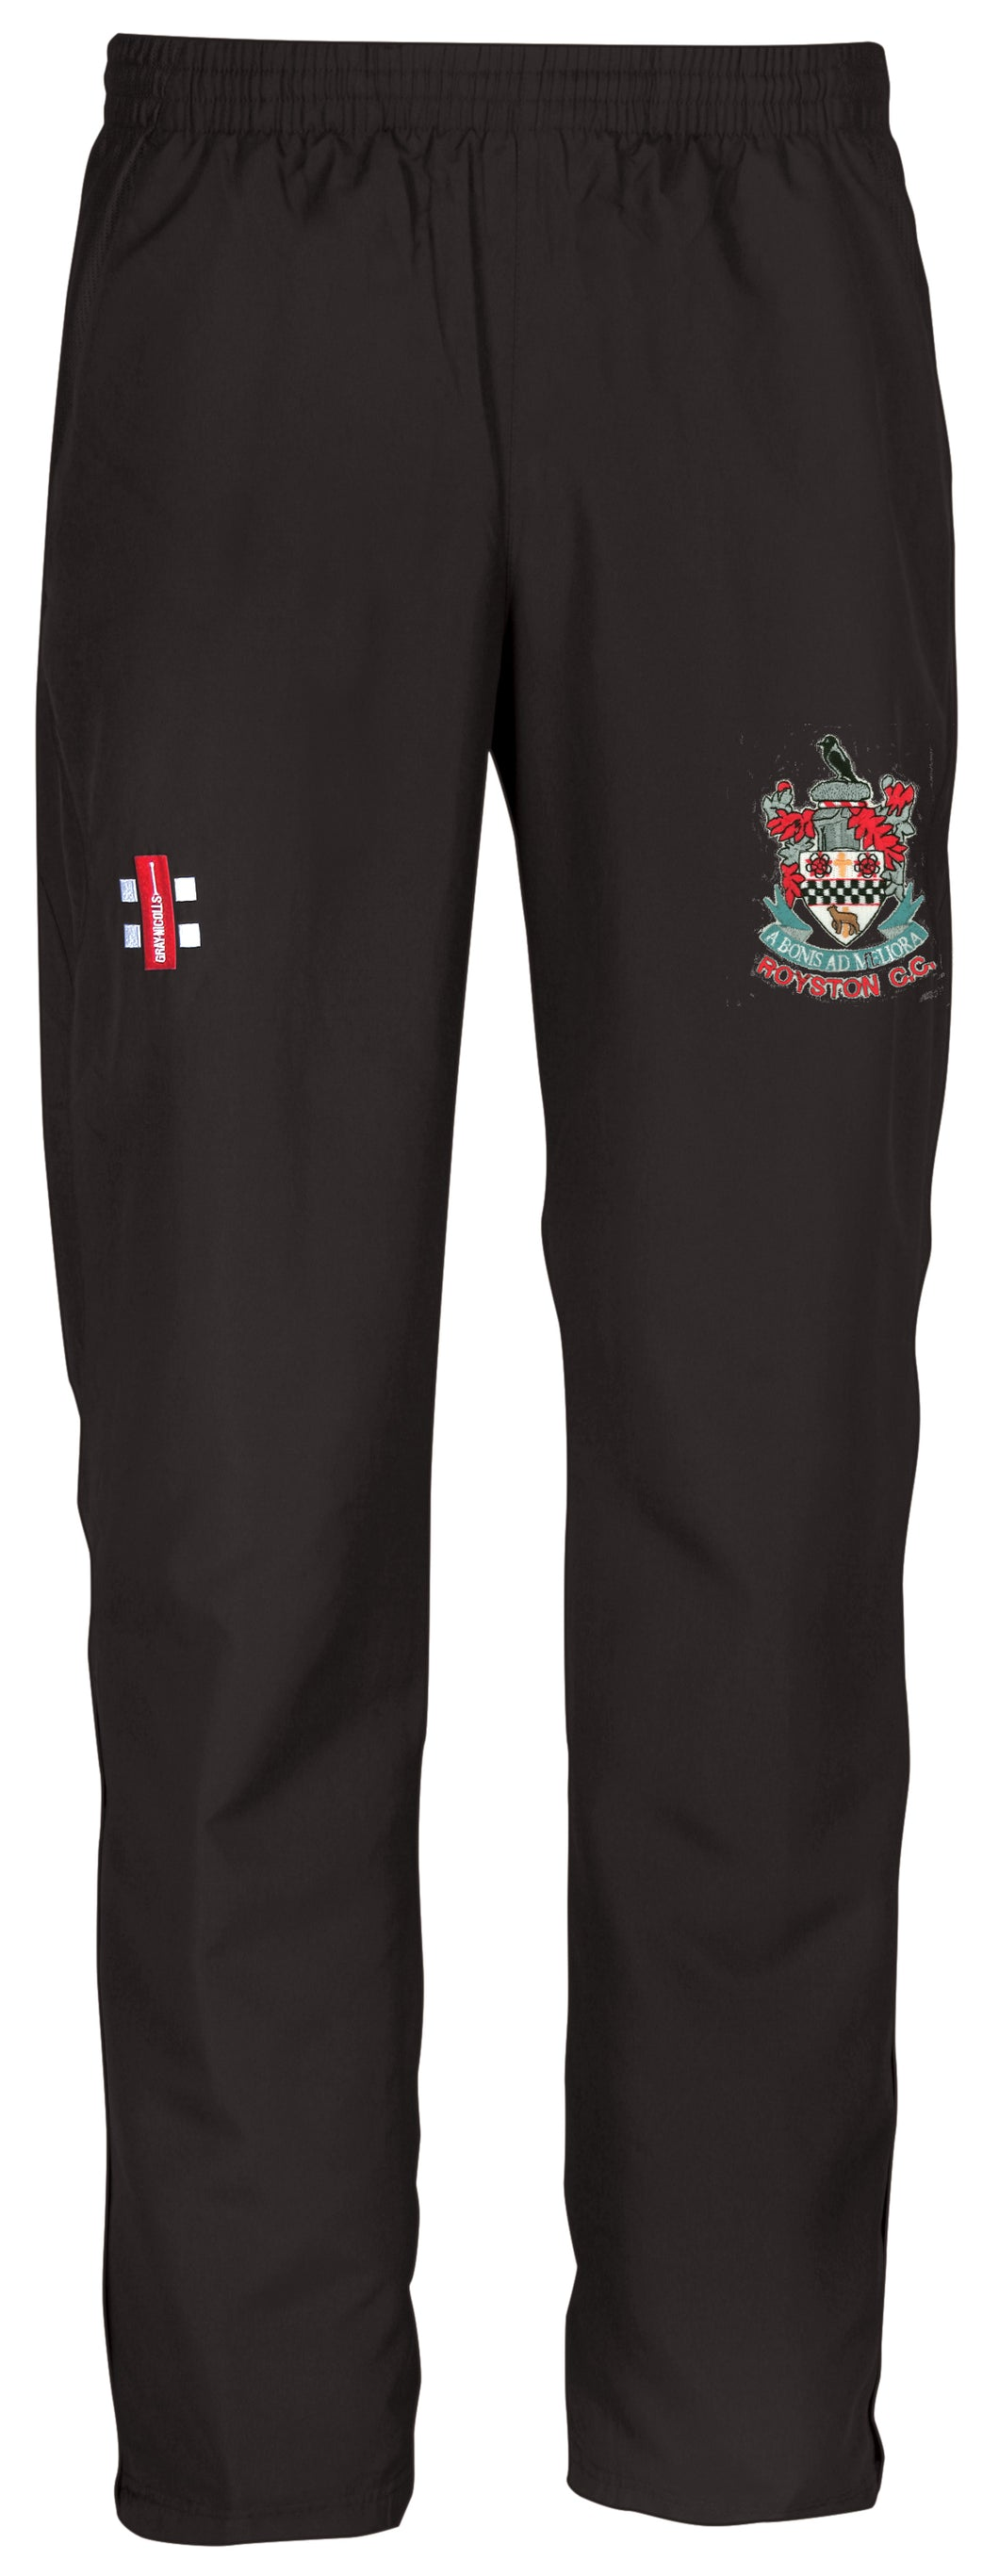 Royston CC Storm Track Trousers Junior - The Incredible Cricket Company